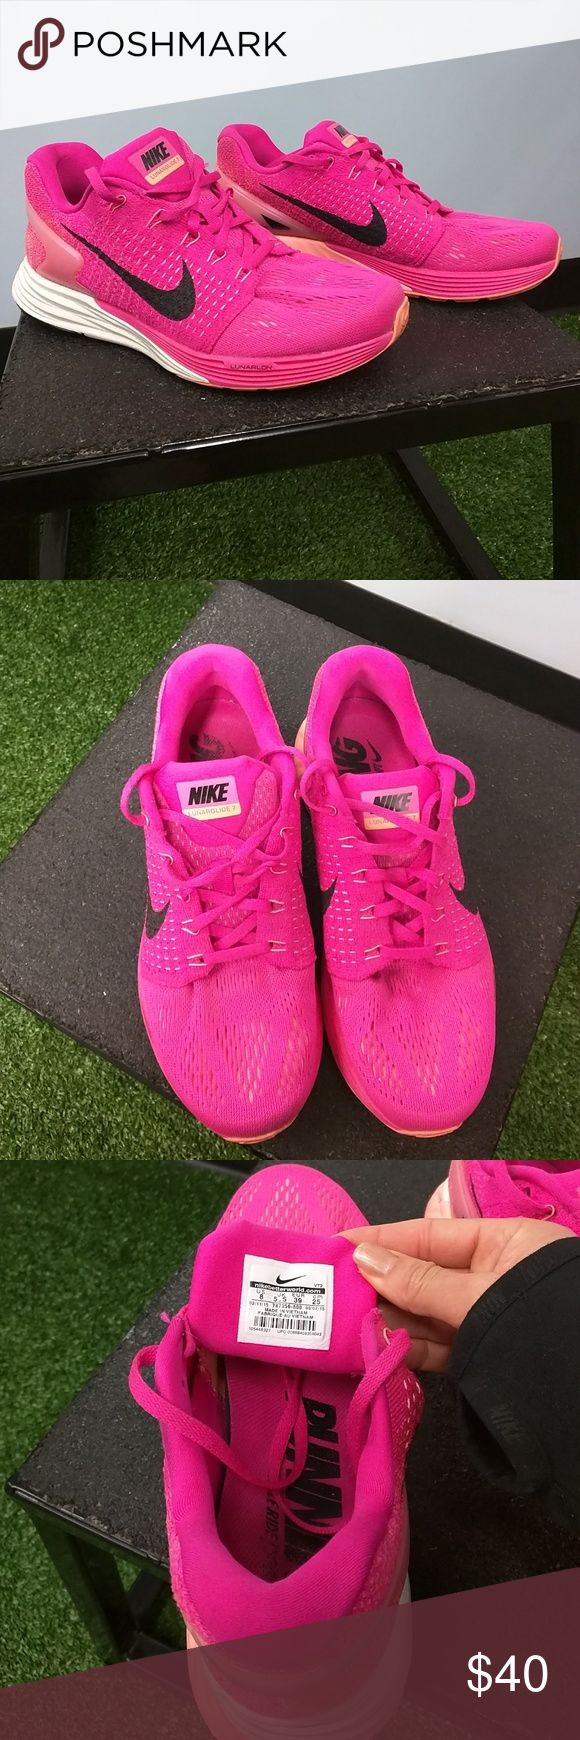 Nike Lunarglide 7 running sneakers Gently used (5 times) Cleaned and has LOTS of life left. My profession allows me to collect many shoes...trying to declutter my stash.   Fabulous color! Neon Pink with mango accents.  Bundle for extra discount Nike Shoes Athletic Shoes